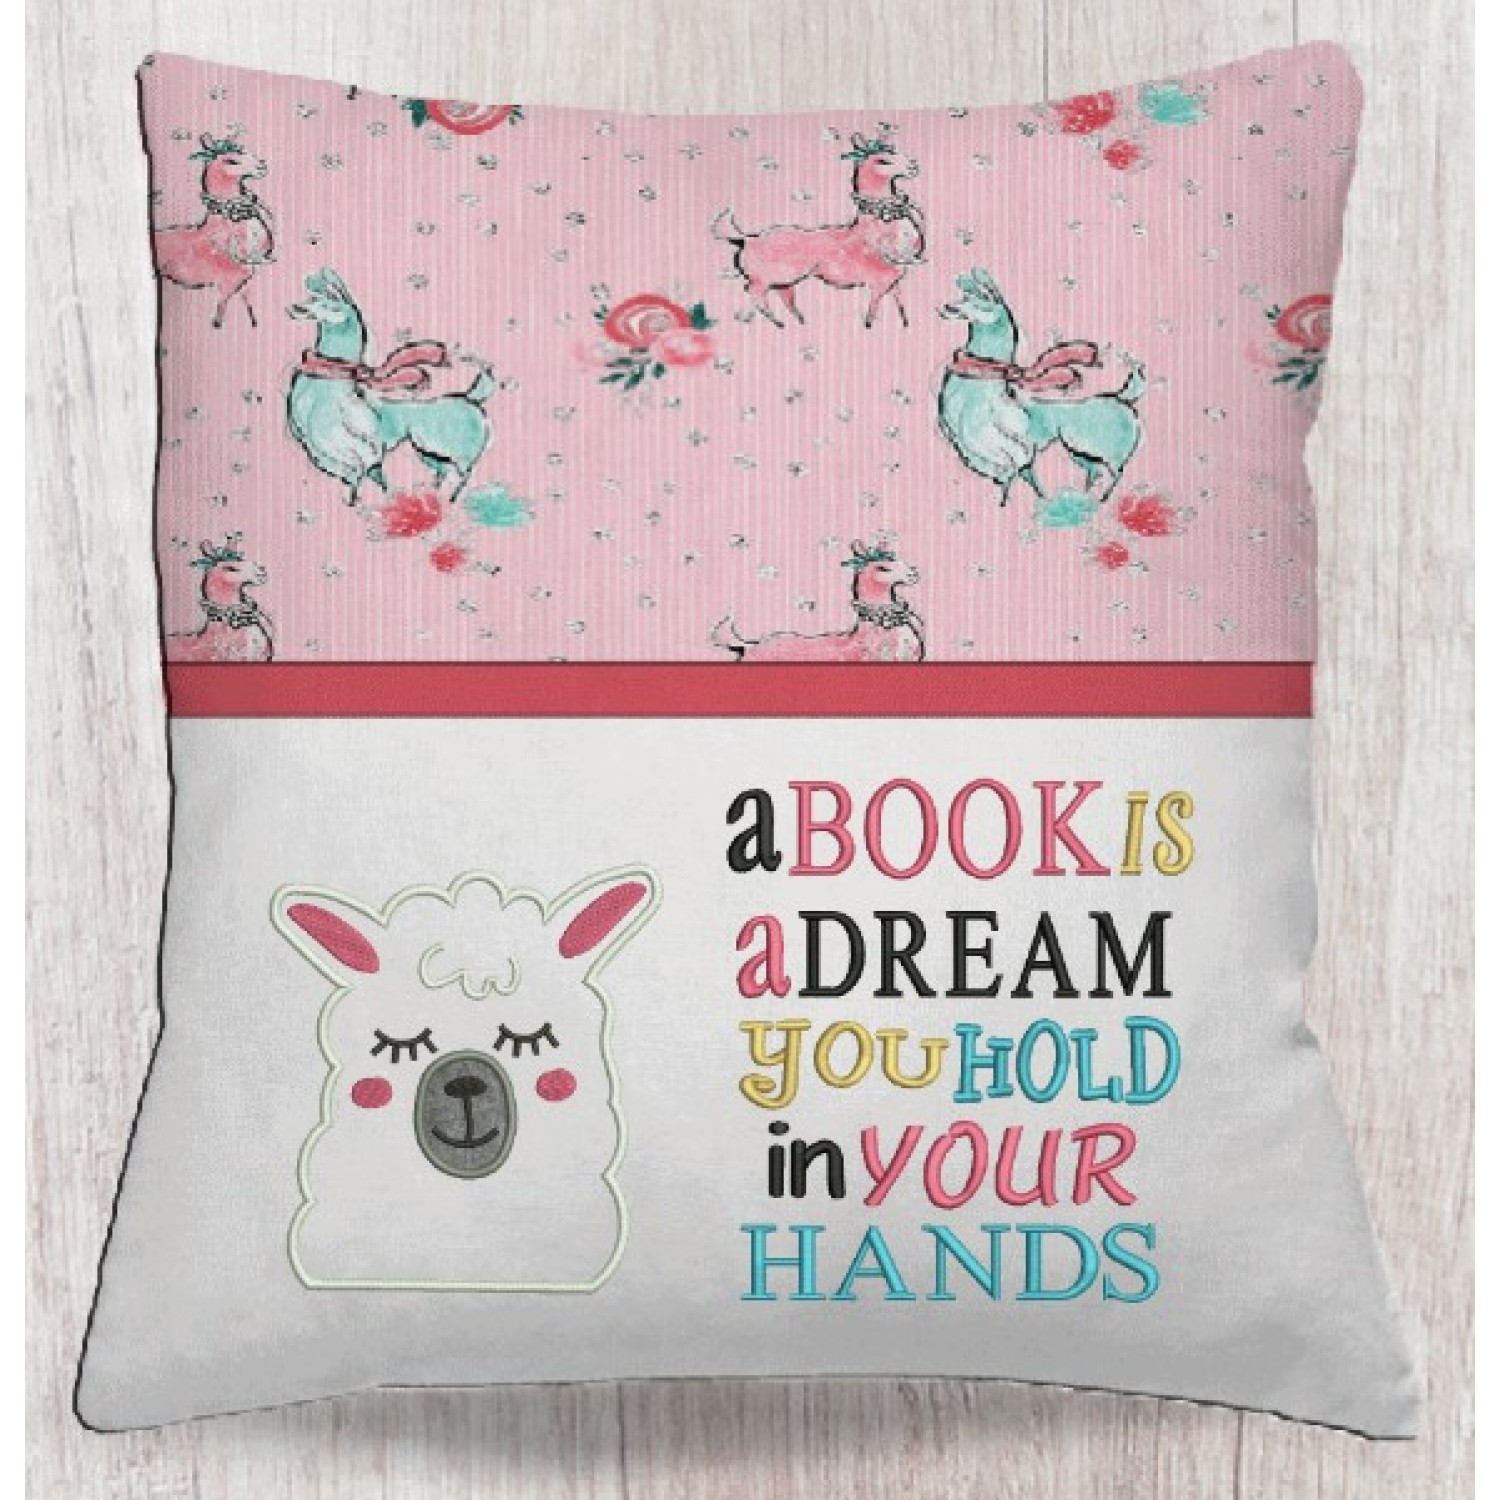 llama face with a book is a dream